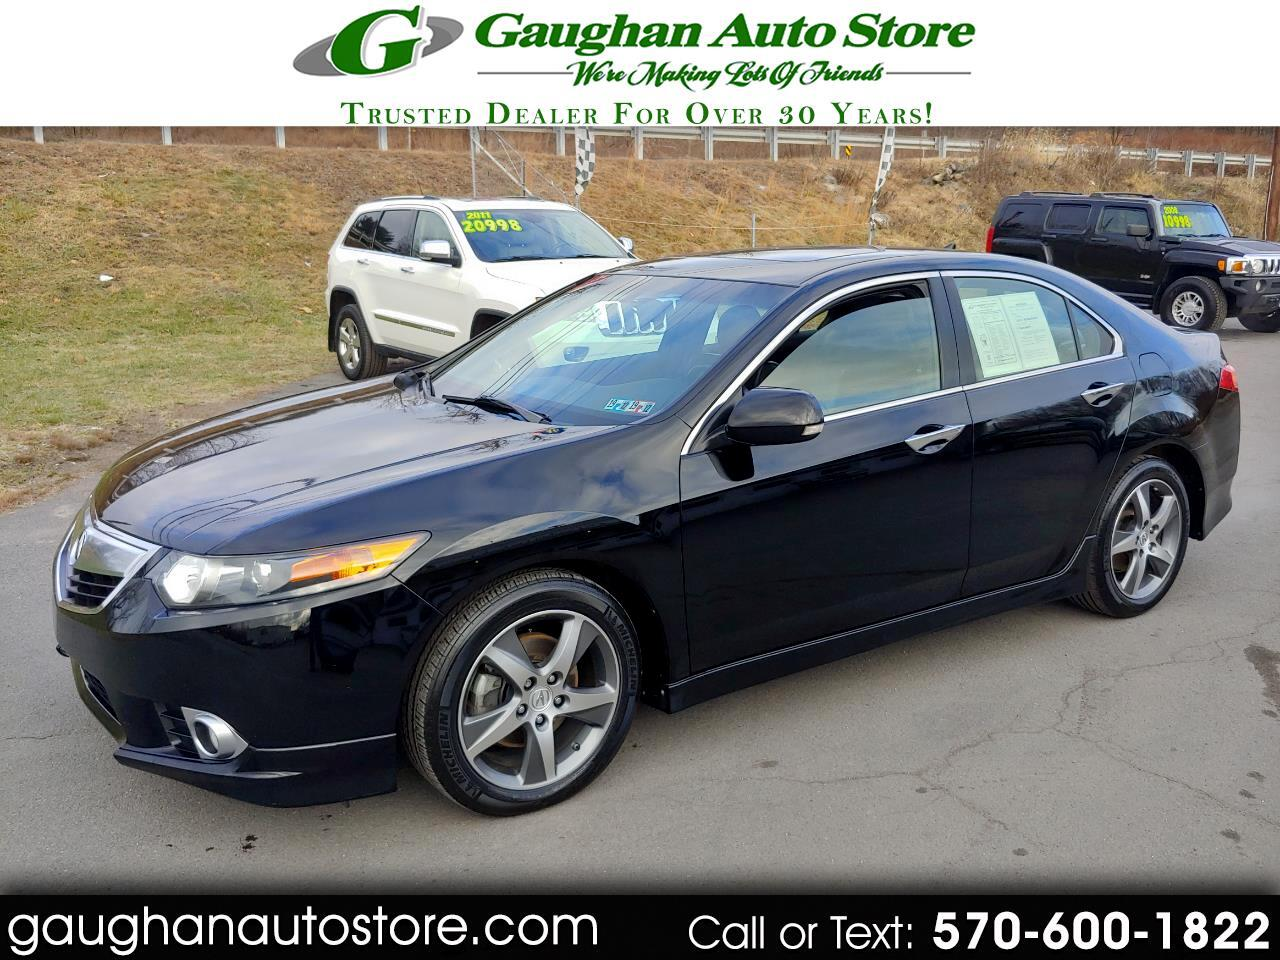 2012 Acura TSX 4dr Sdn I4 Auto Special Edition